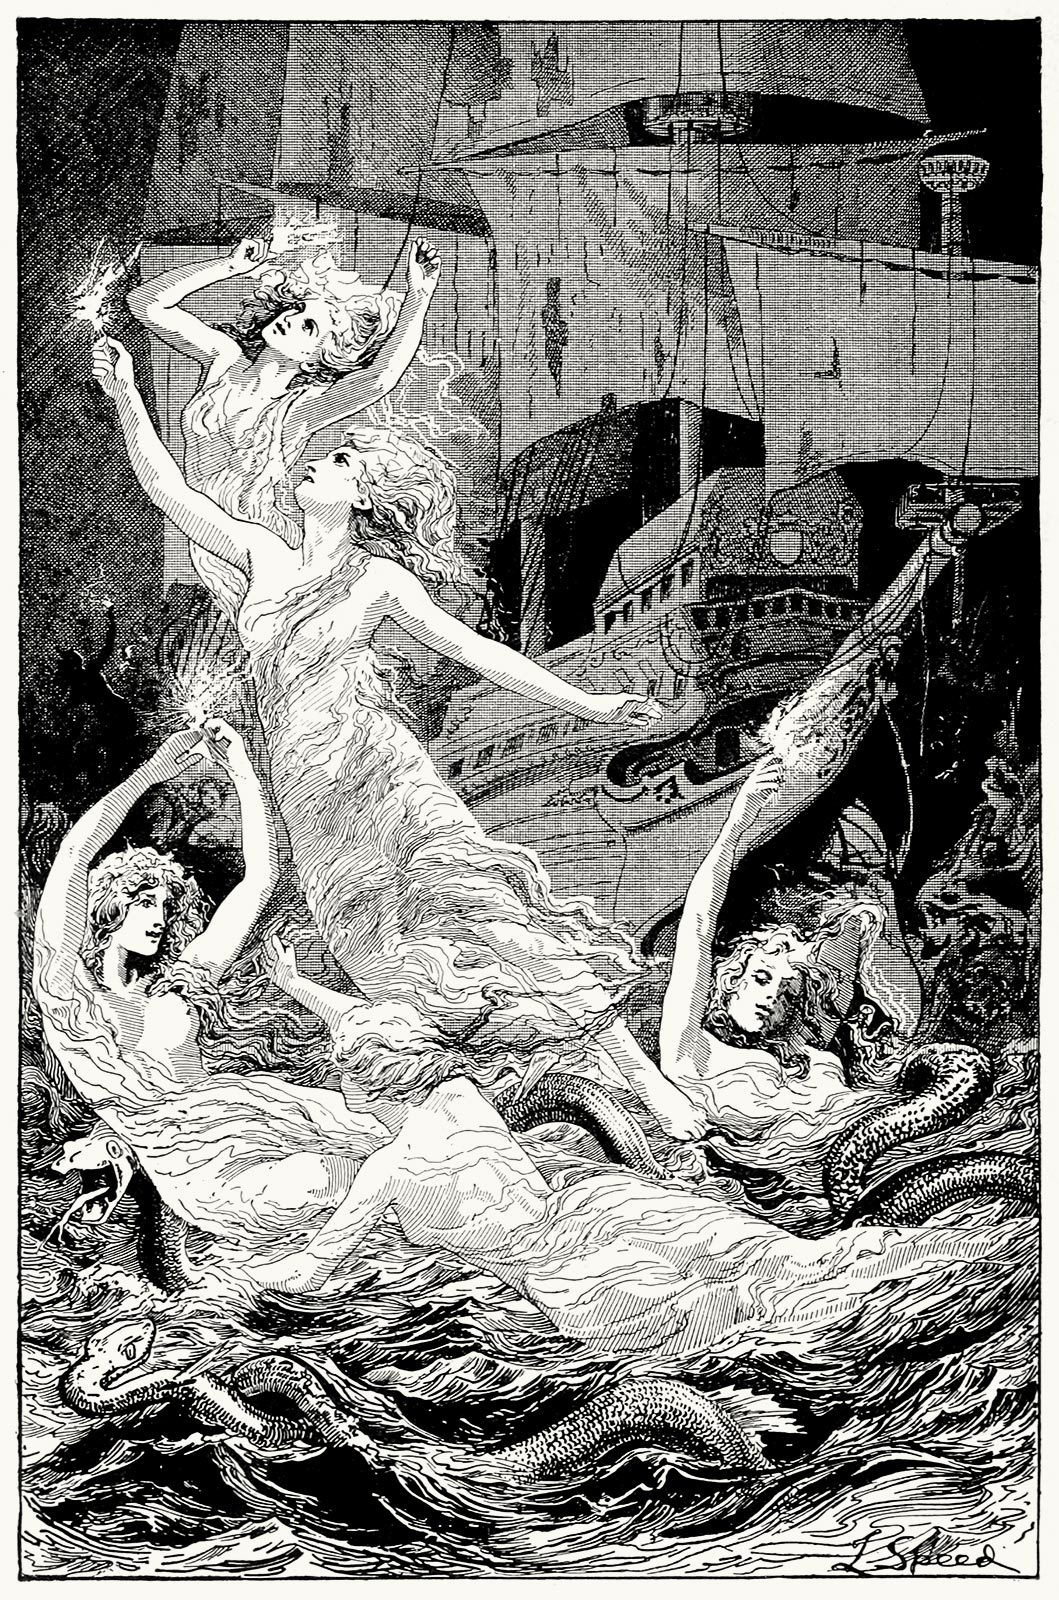 oldbookillustrations:  The death-fires danced at night. Lancelot Speed, from The blue poetry book, edited by Andrew Lang, illustrated by Lancelot Speed and H. J. Ford. London, New York, Bombay, and Calcutta, 1912. (Source: archive.org)